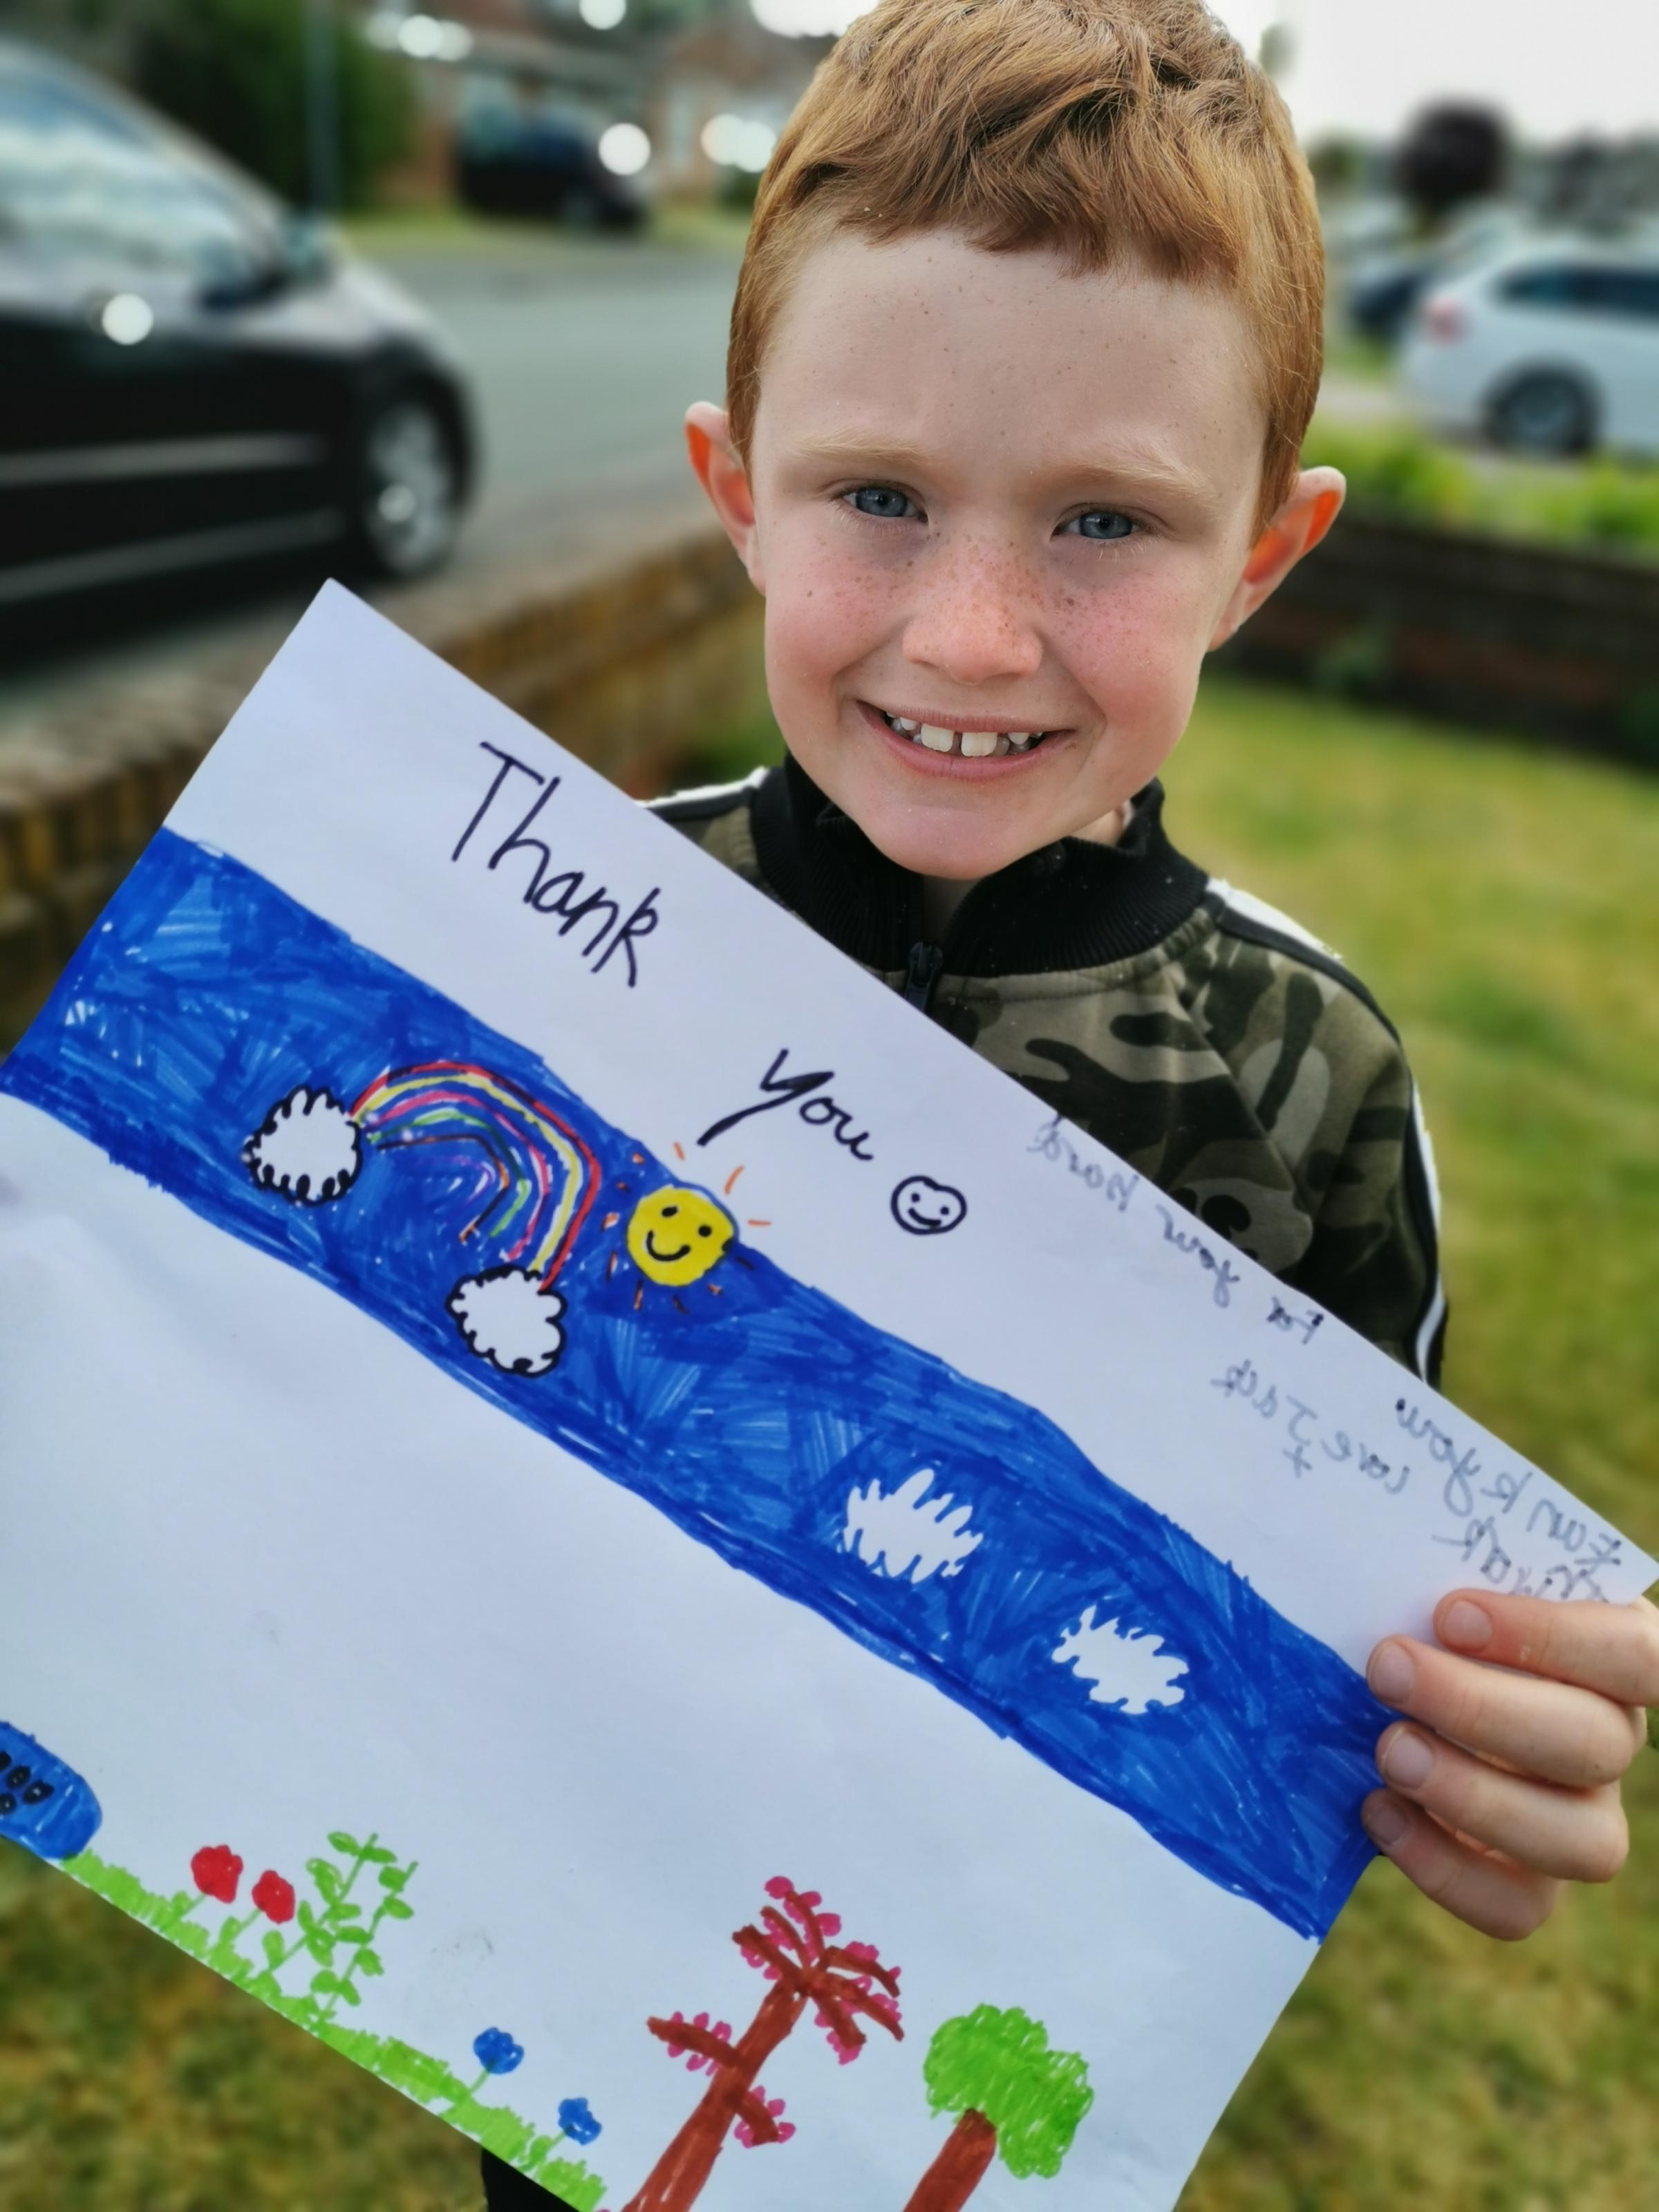 Warrington Guardian: Jason is our favourite postie. He does the rounds on Wroxham Road in Great Sankey. He always has a smile and a thumbs up for the children. My son made him a picture to say thanks for all of his hard work and gave it to him last week.